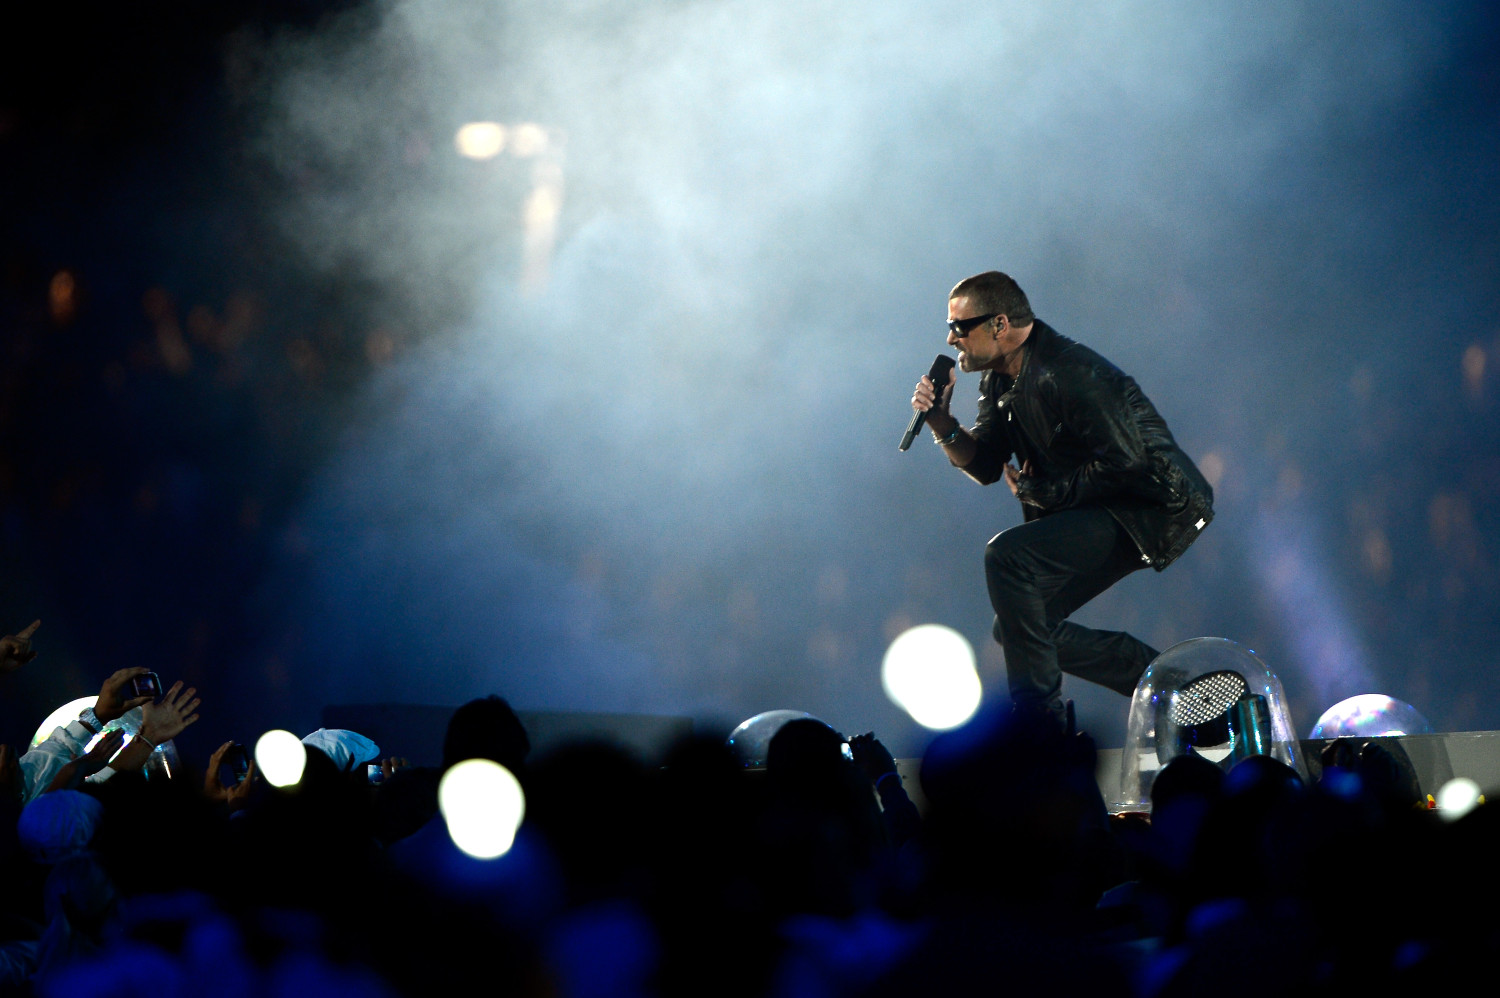 George Michael performing at the 2012 Olympic closing ceremony (Pascal Le Segretain/Getty Images)